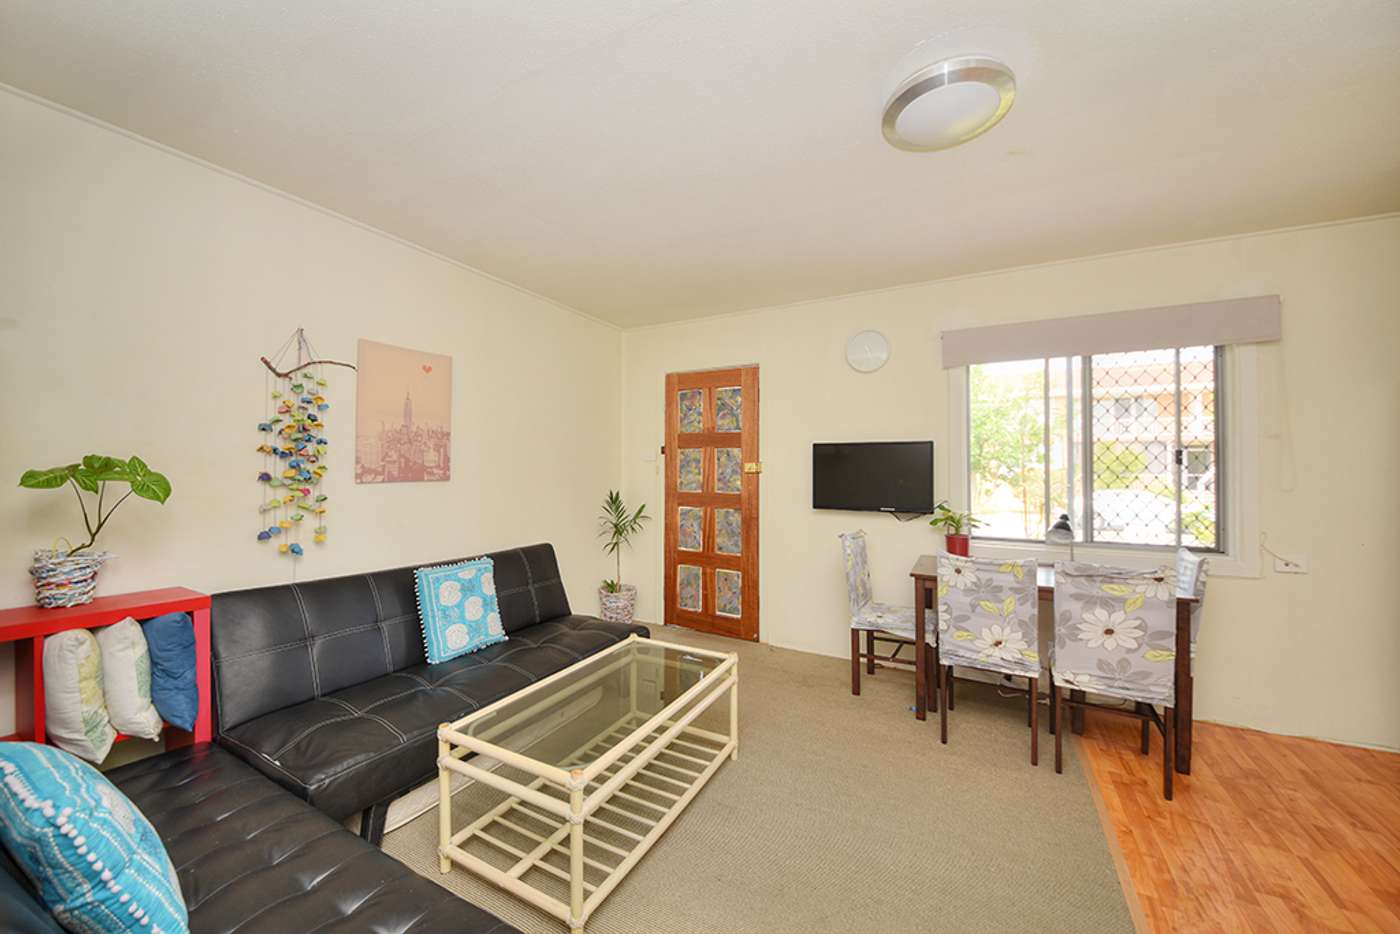 Main view of Homely unit listing, 3/1 Sunrise Blvd, Surfers Paradise QLD 4217